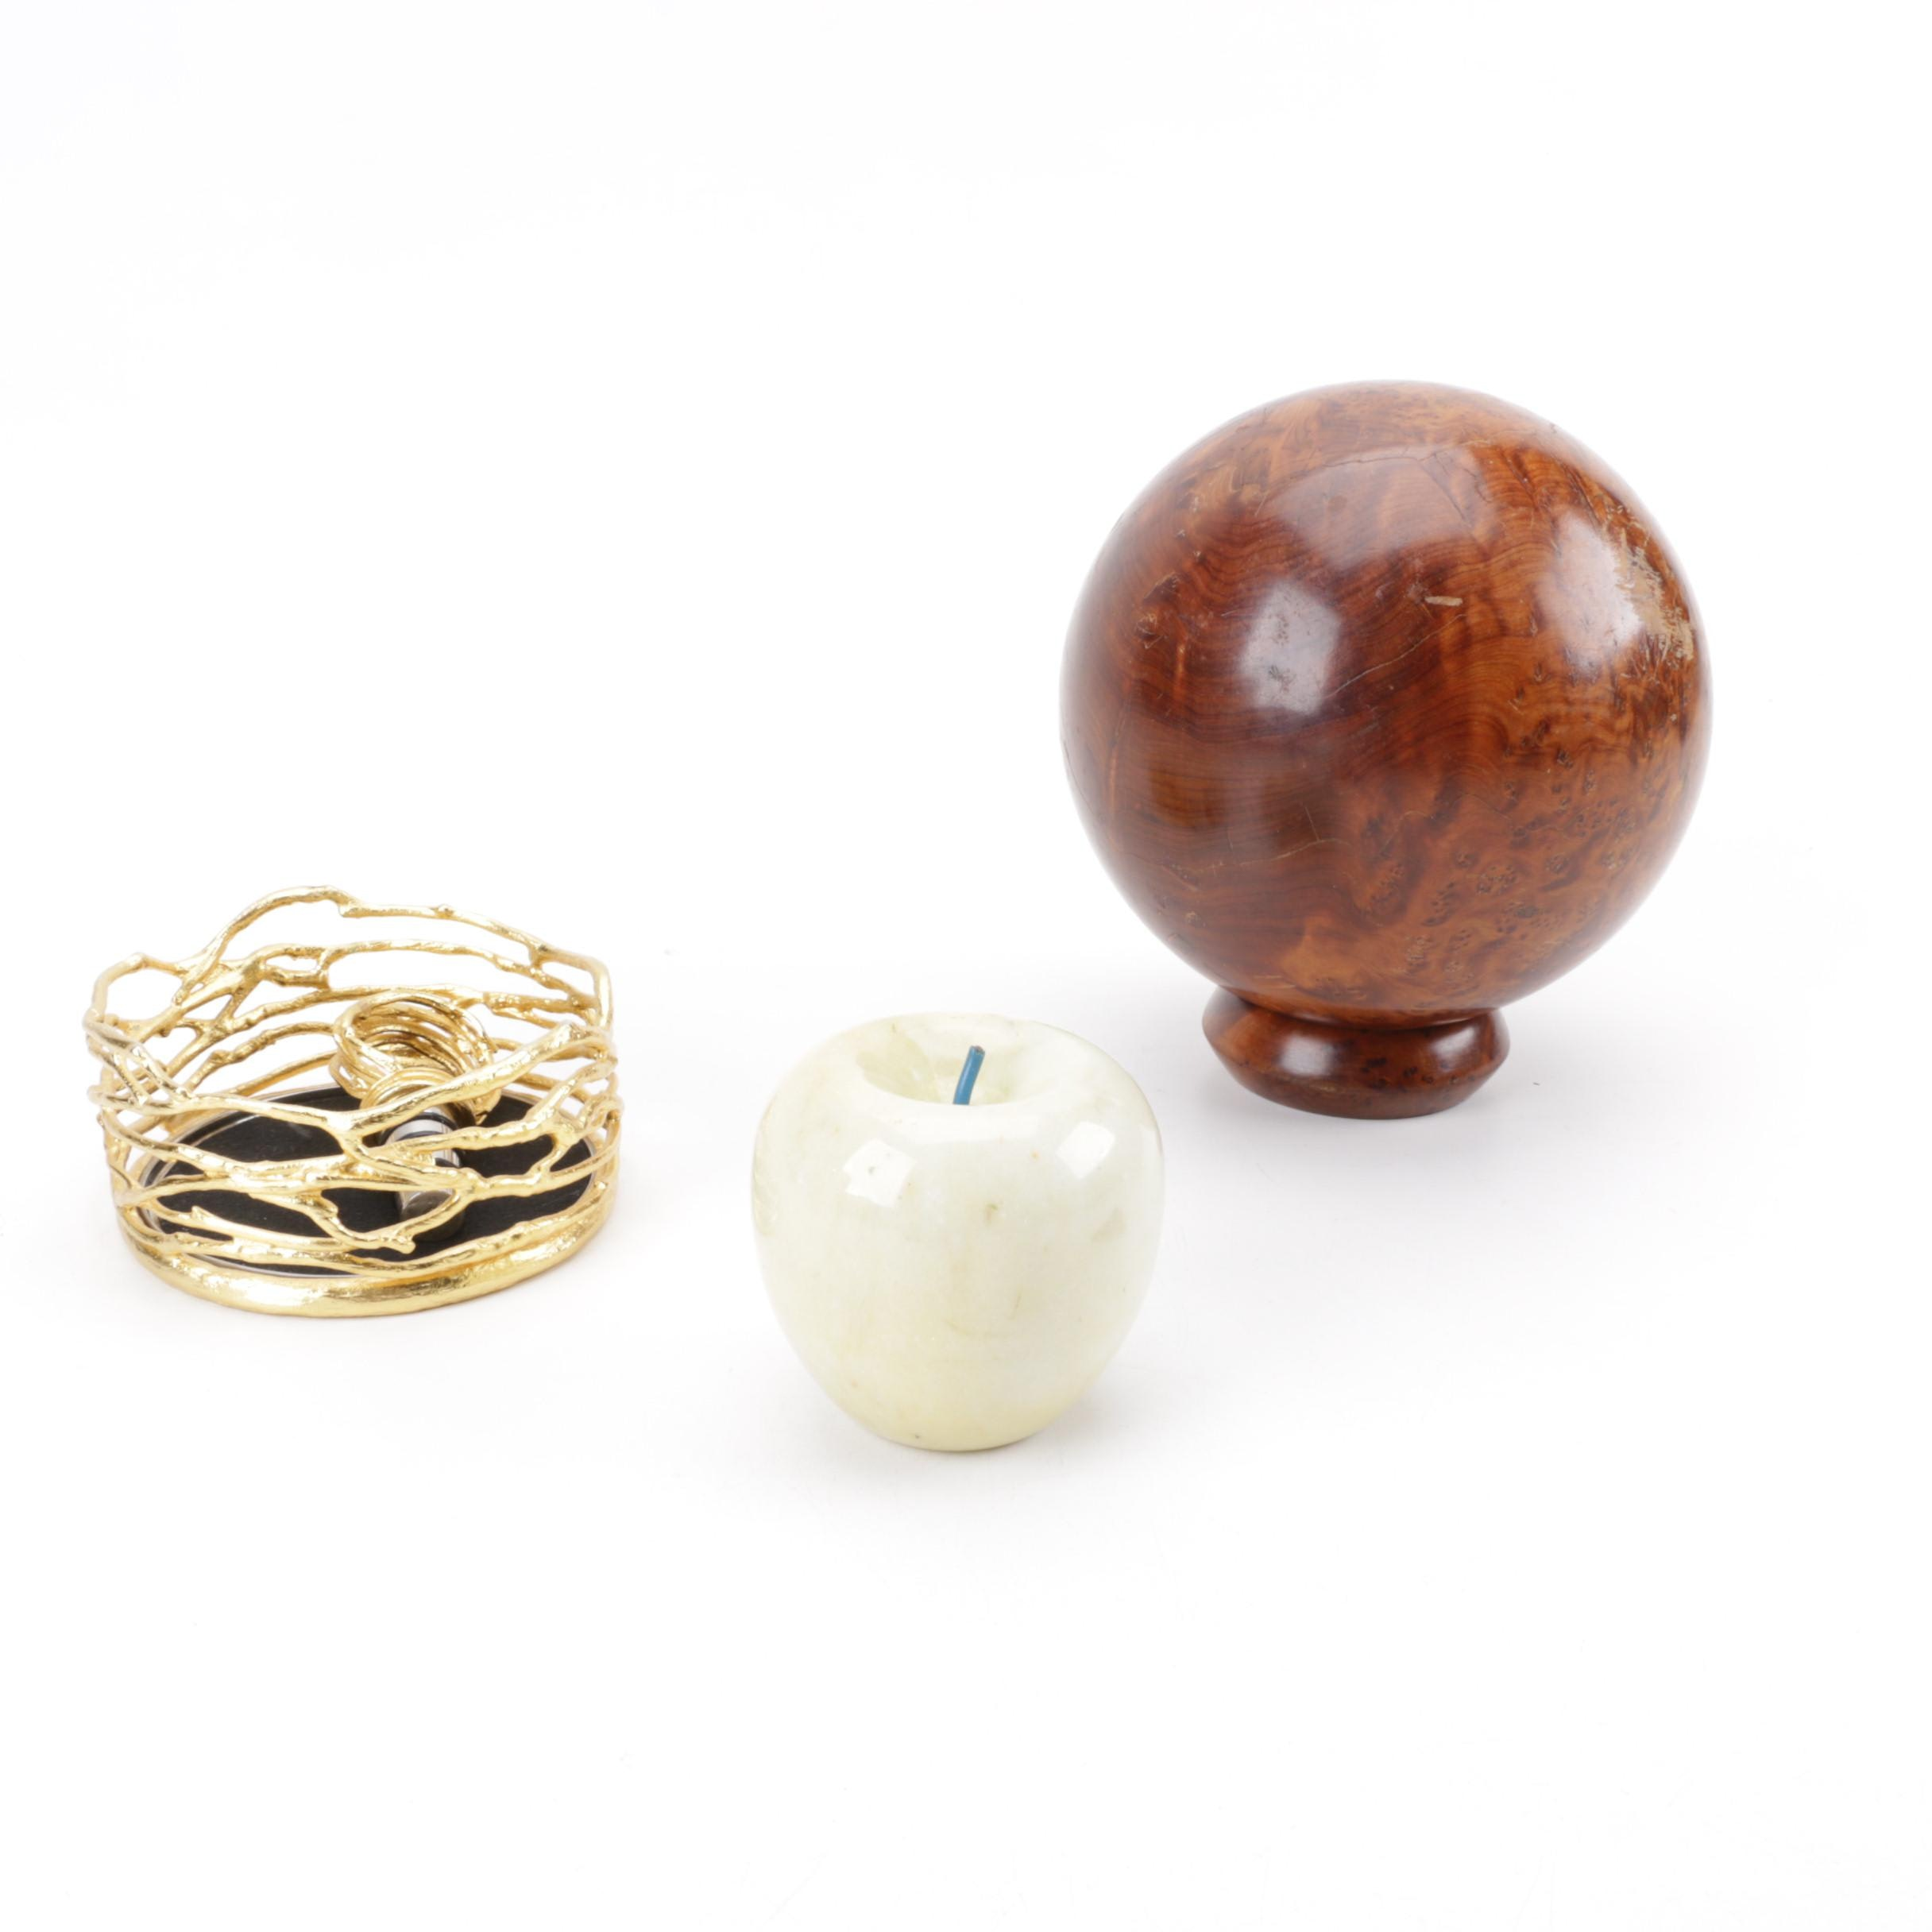 Wine Bottle Coaster With Stopper, Marble Apple, and Polished Wood Sphere